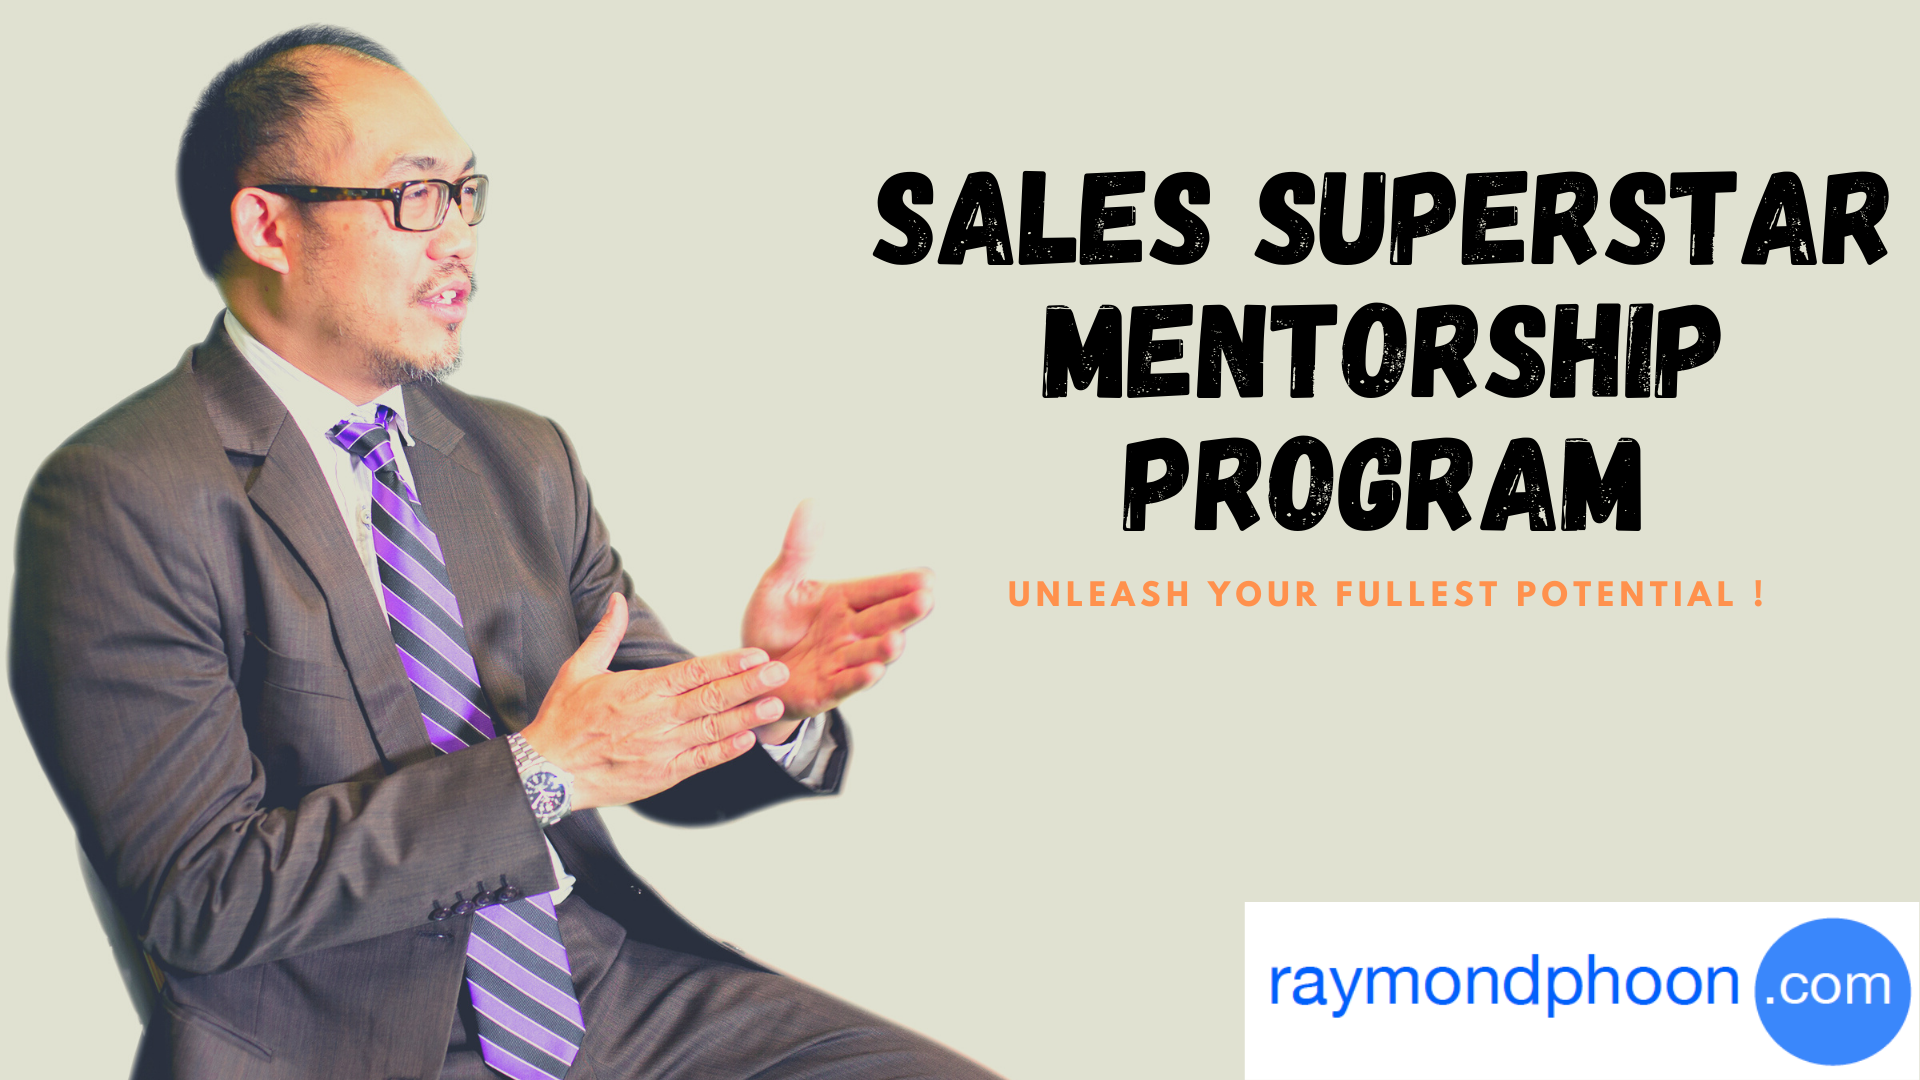 Sales SuperStar Mentorship Program